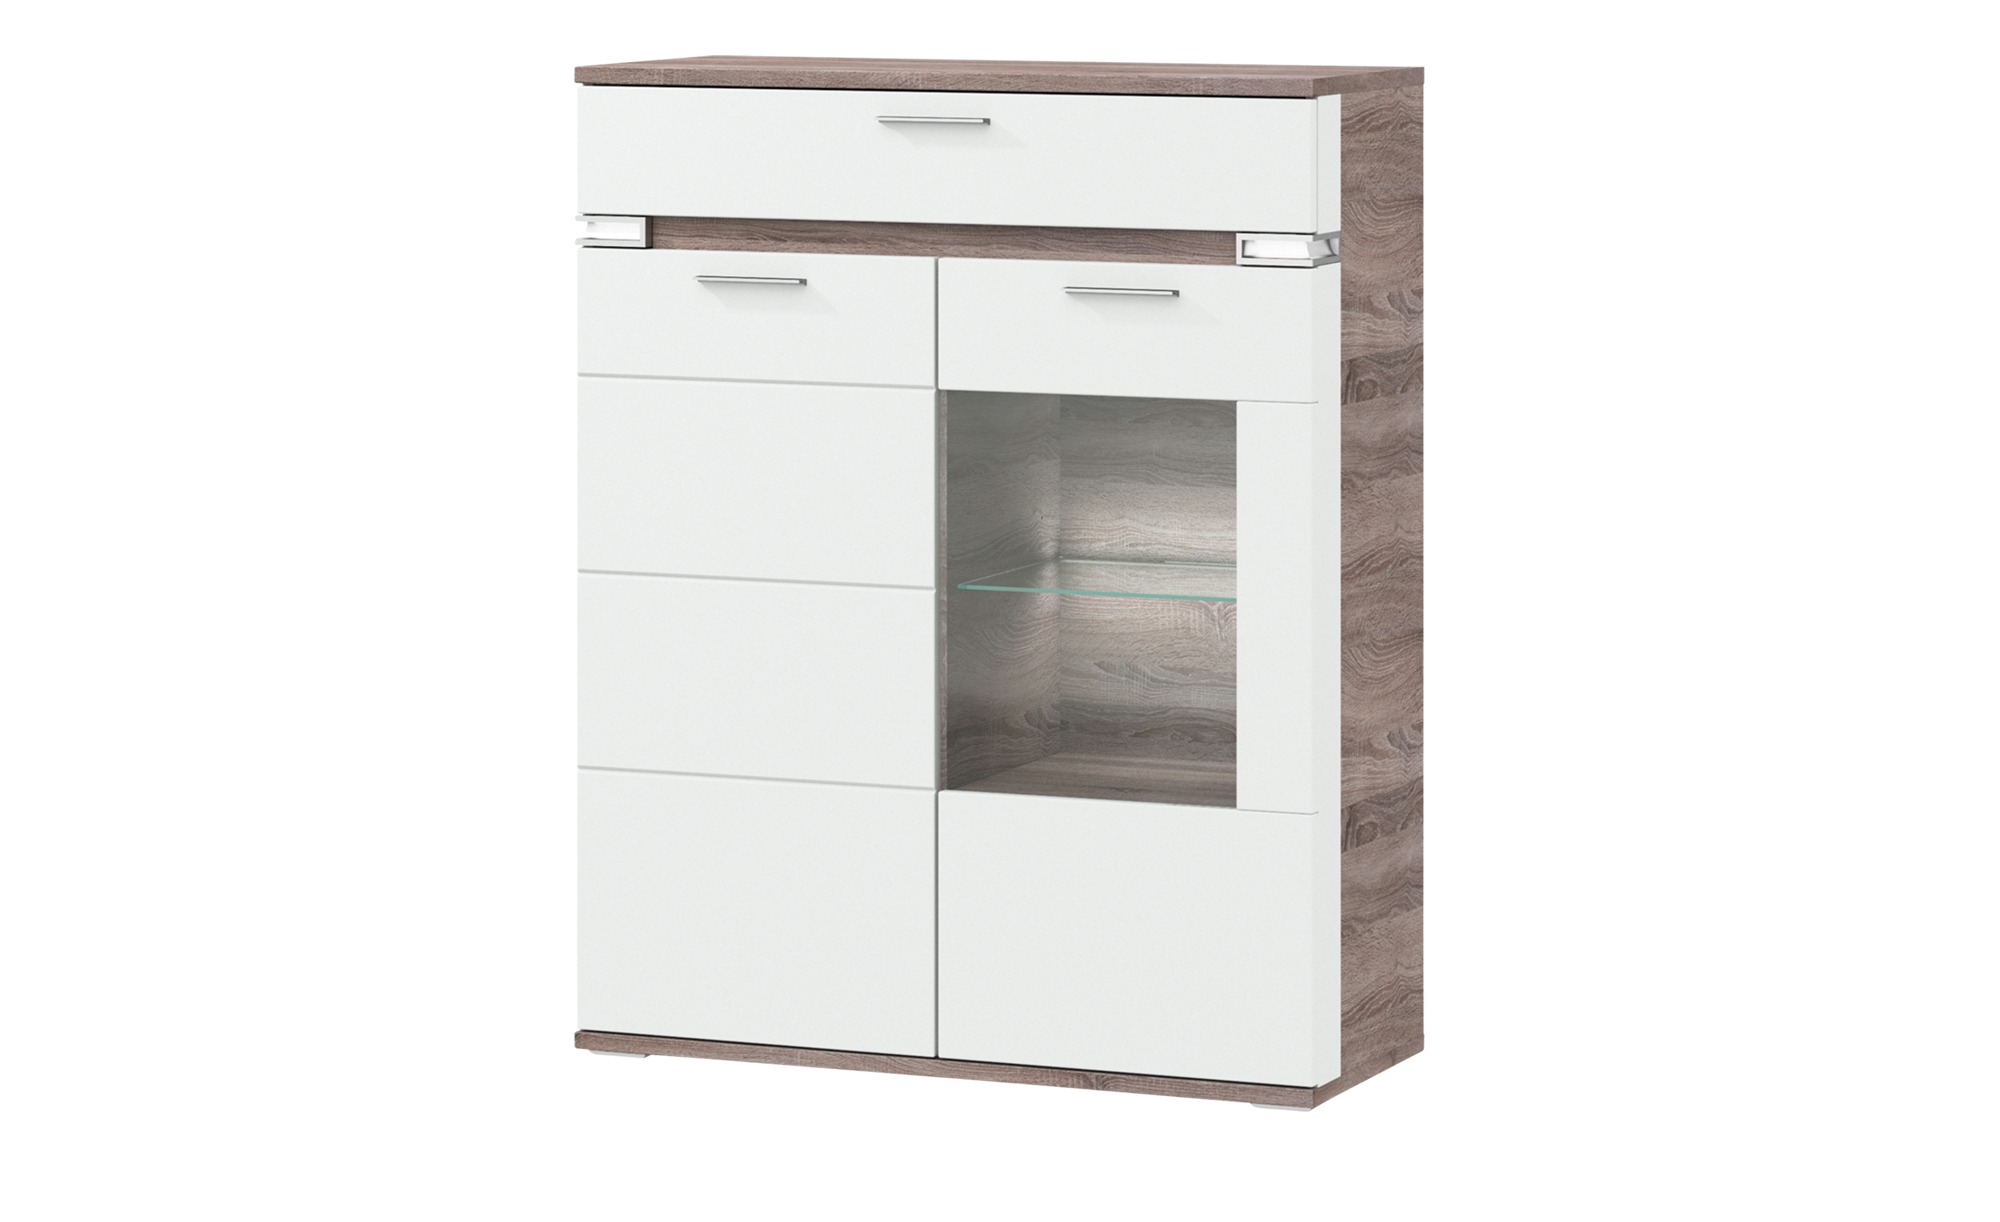 uno Highboard   Katt ¦ Maße (cm): B: 100 H: 126 T: 41 Kommoden & Sideboards > Highboards - Höffner